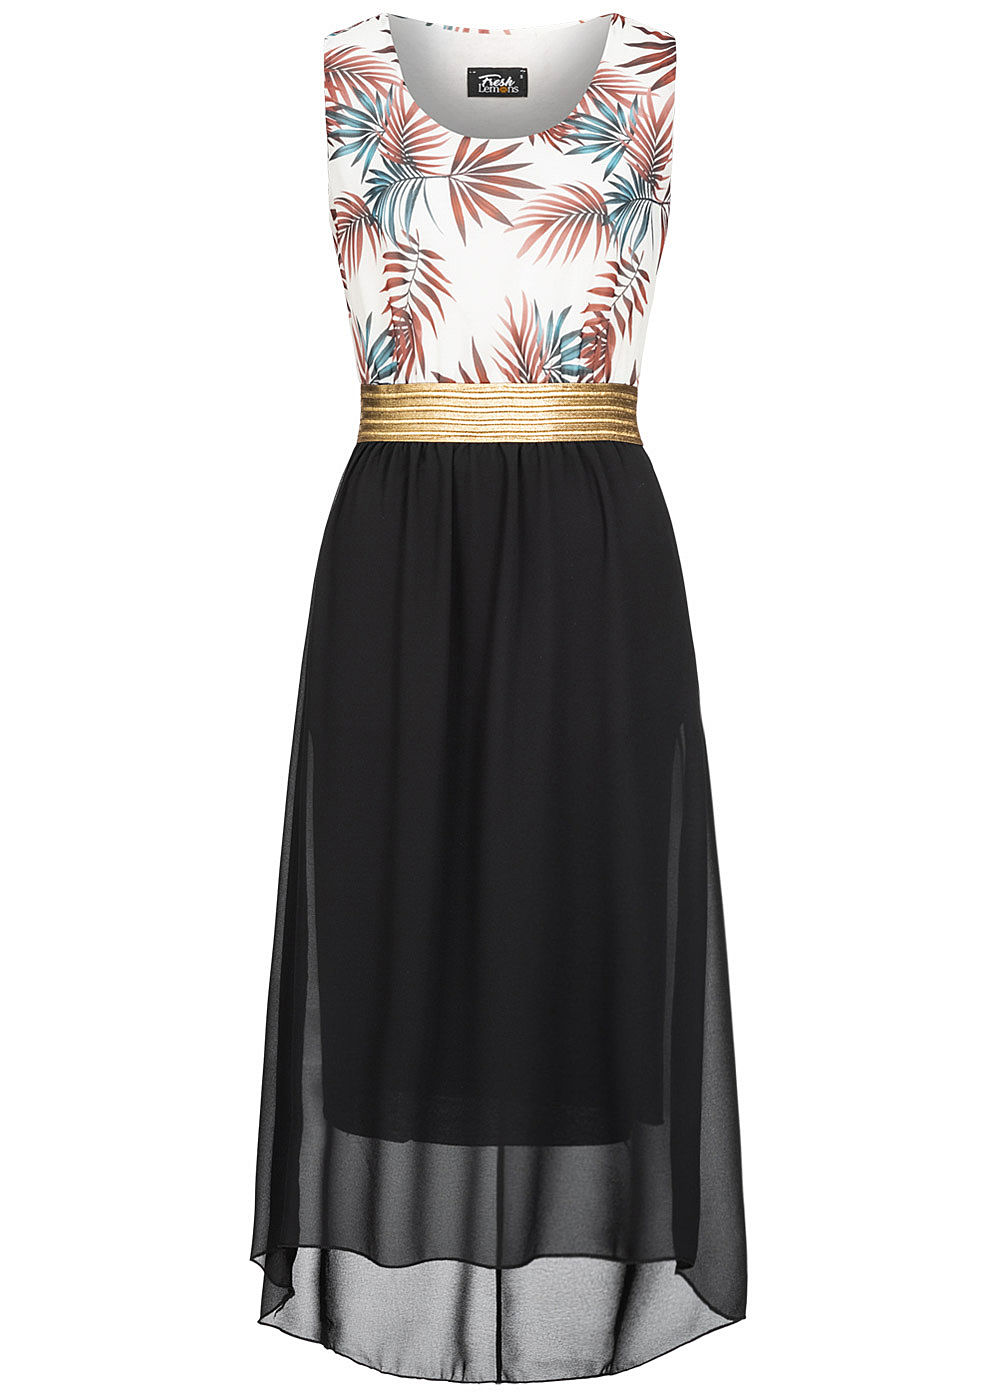 Fresh Lemons Damen 2-Tone Maxi Kleid Tropical Print schwarz weiss gold - Art.-Nr.: 20055080